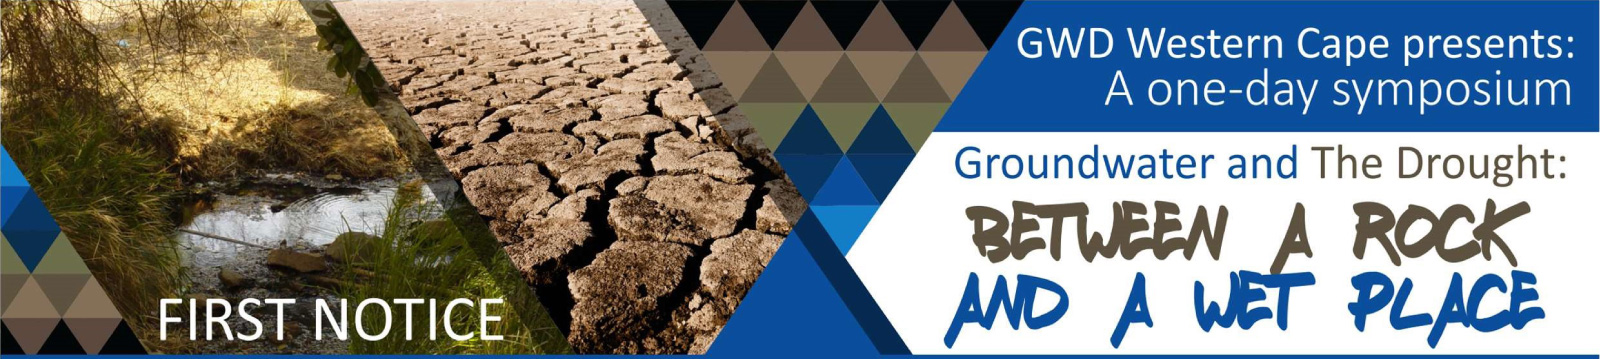 GWD Symposium: Groundwater and the Drought